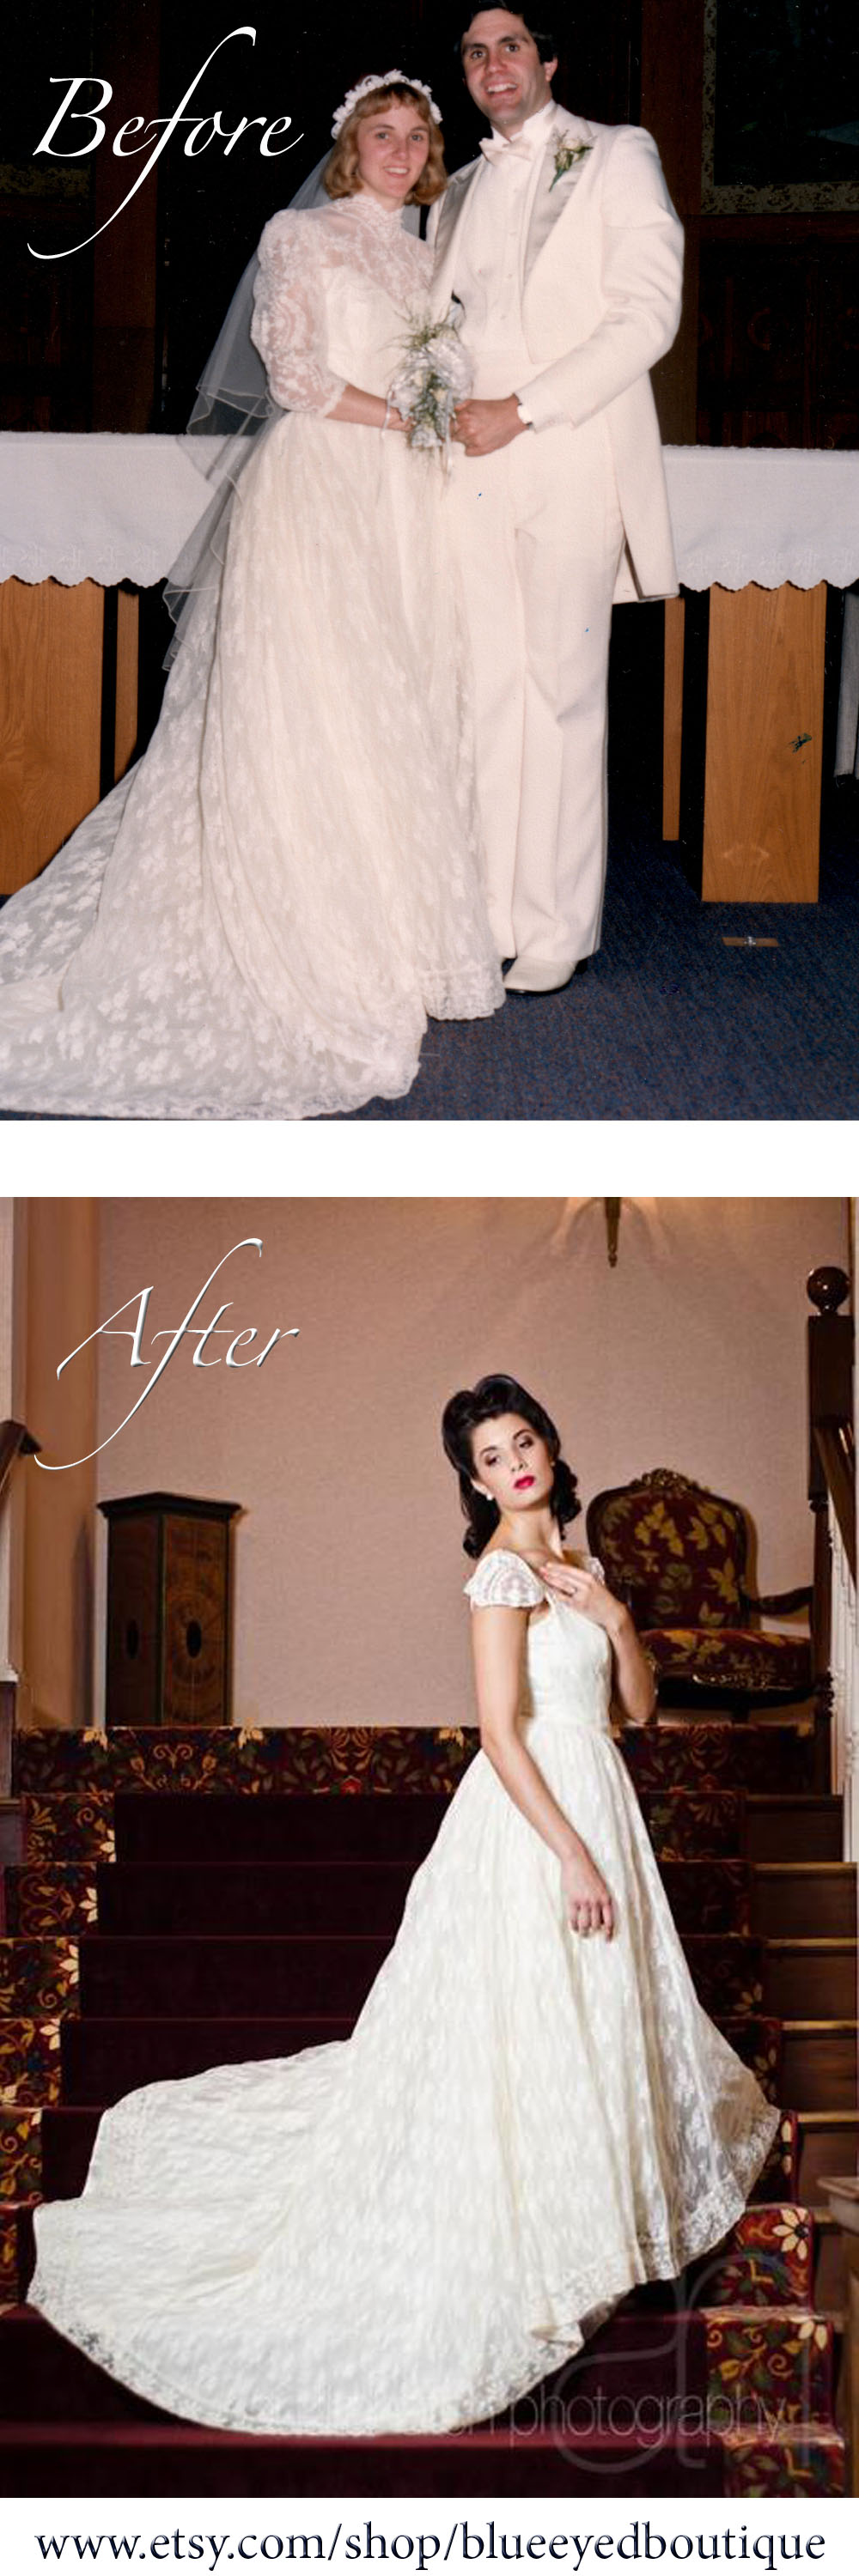 Marie Vintage 1950's style upcycled lace wedding gown